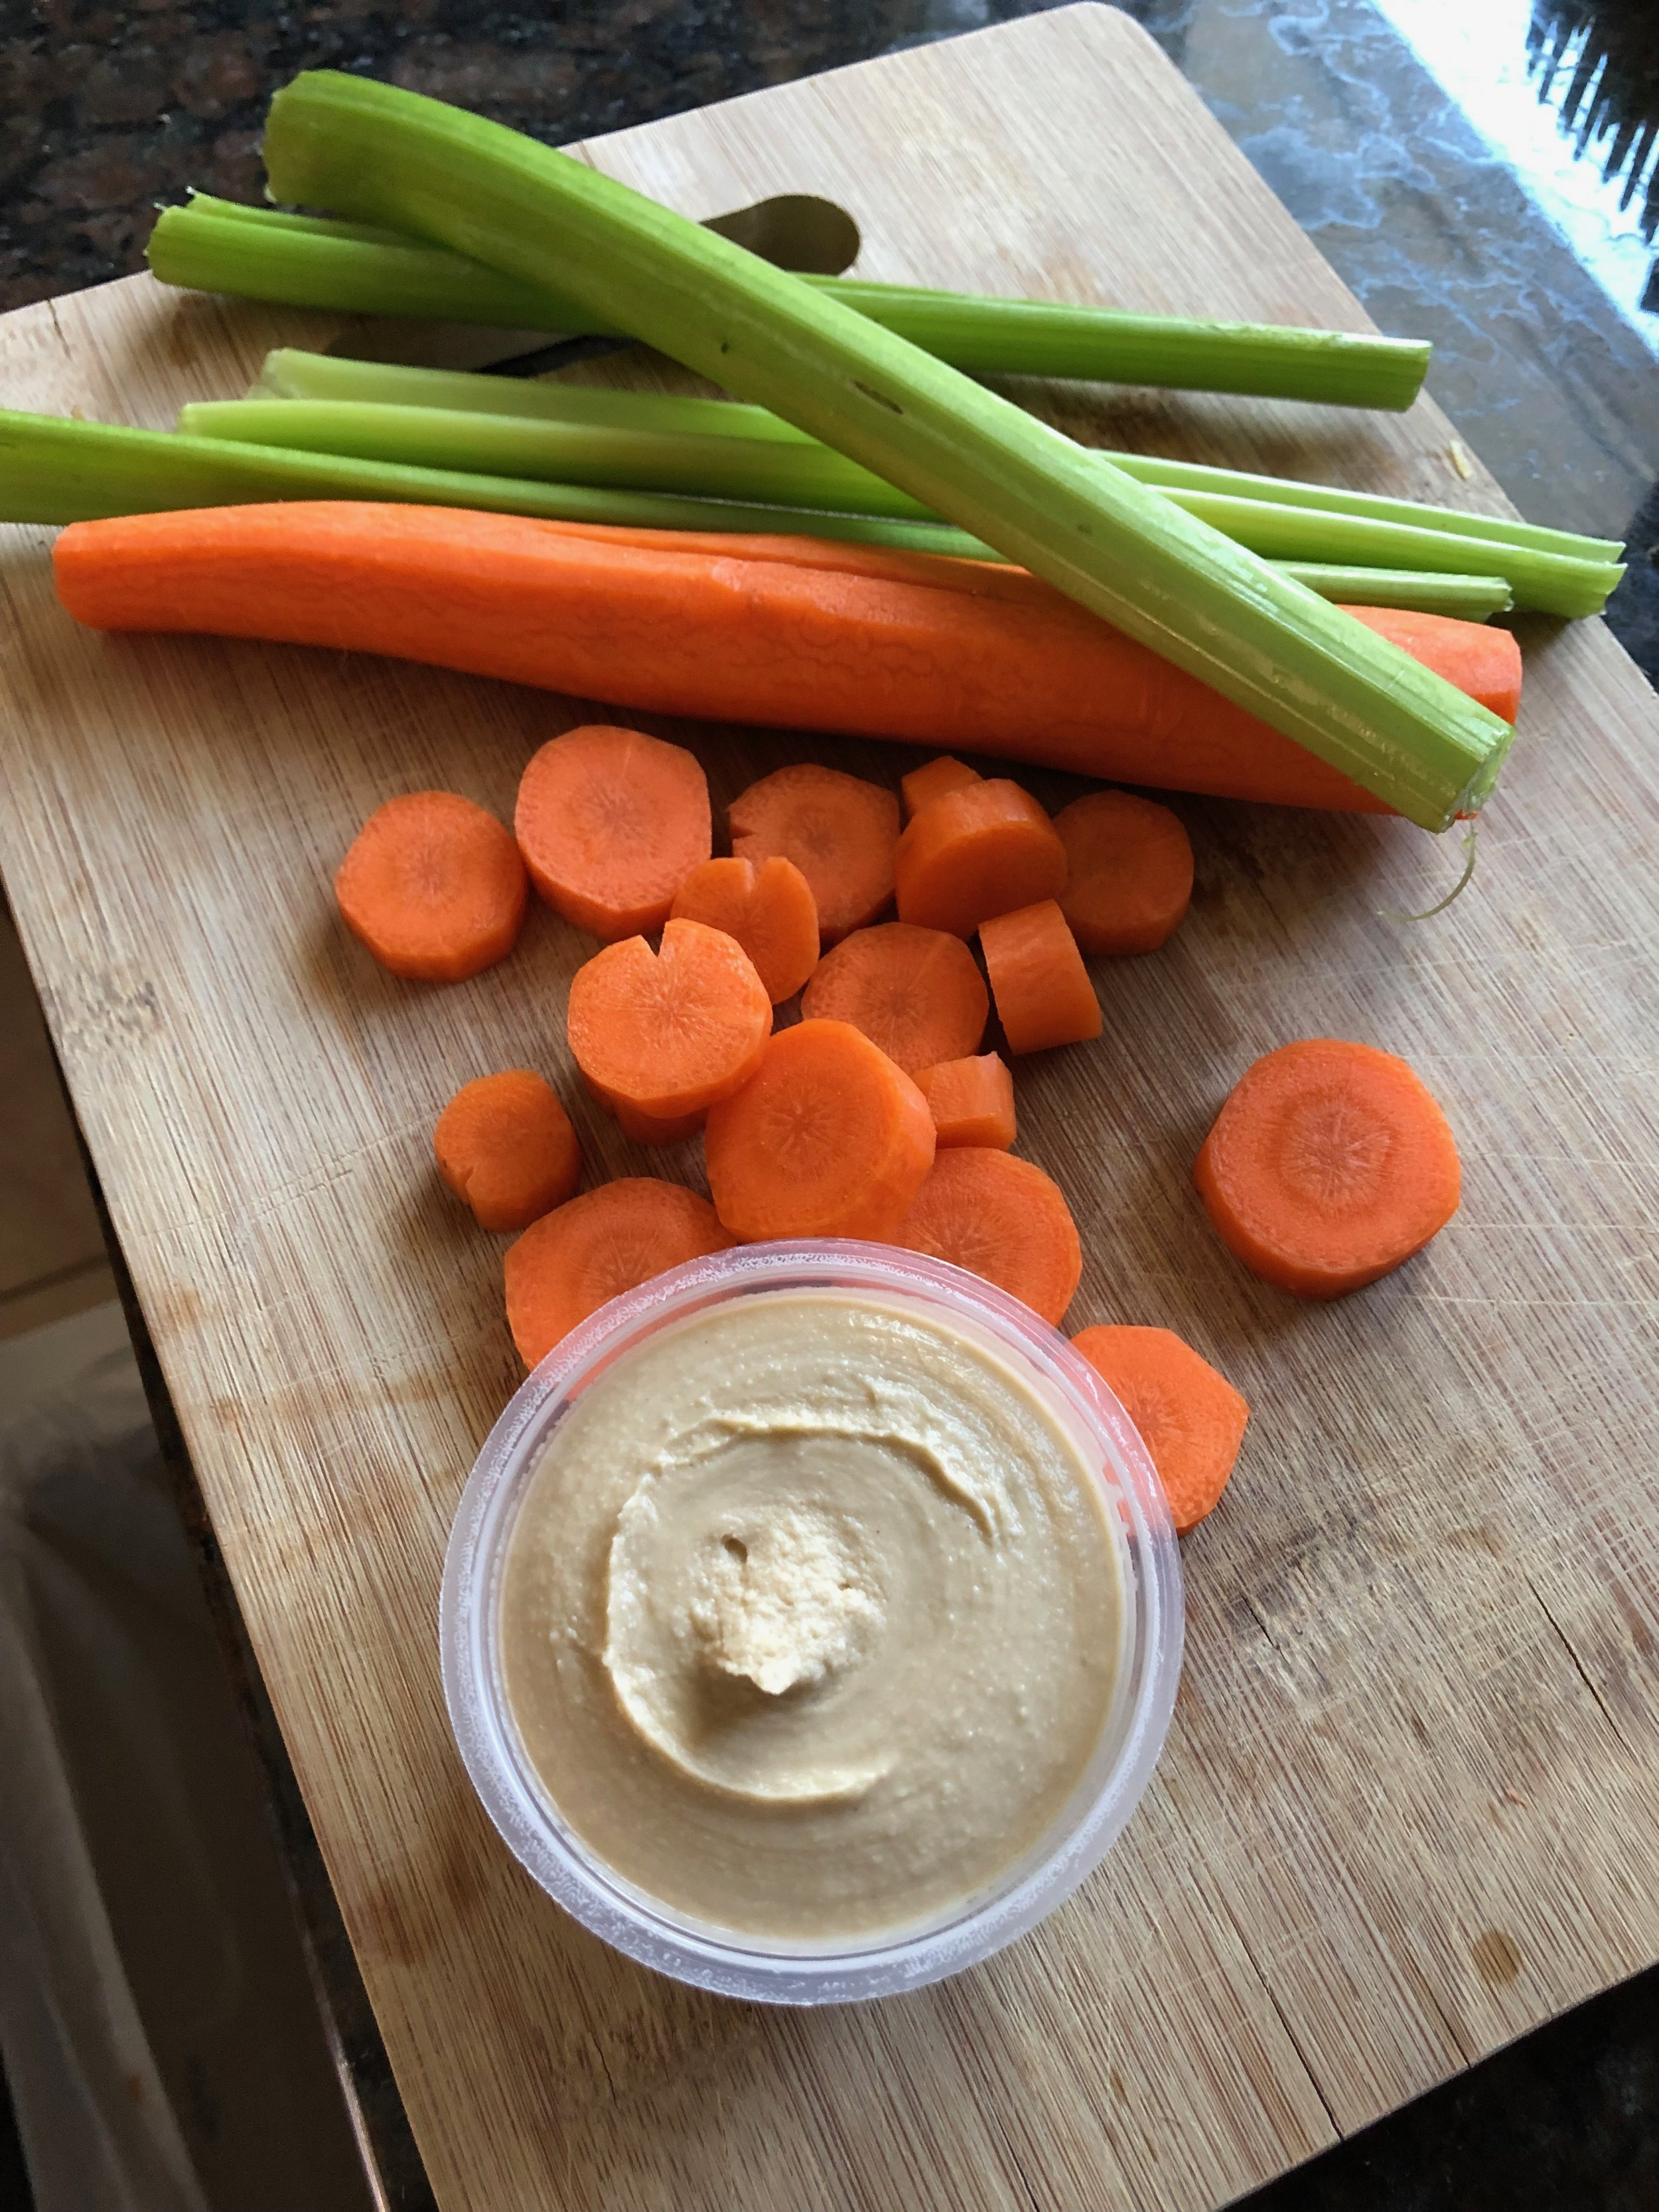 Carrots and hummus can be a tooth-healthy snack.